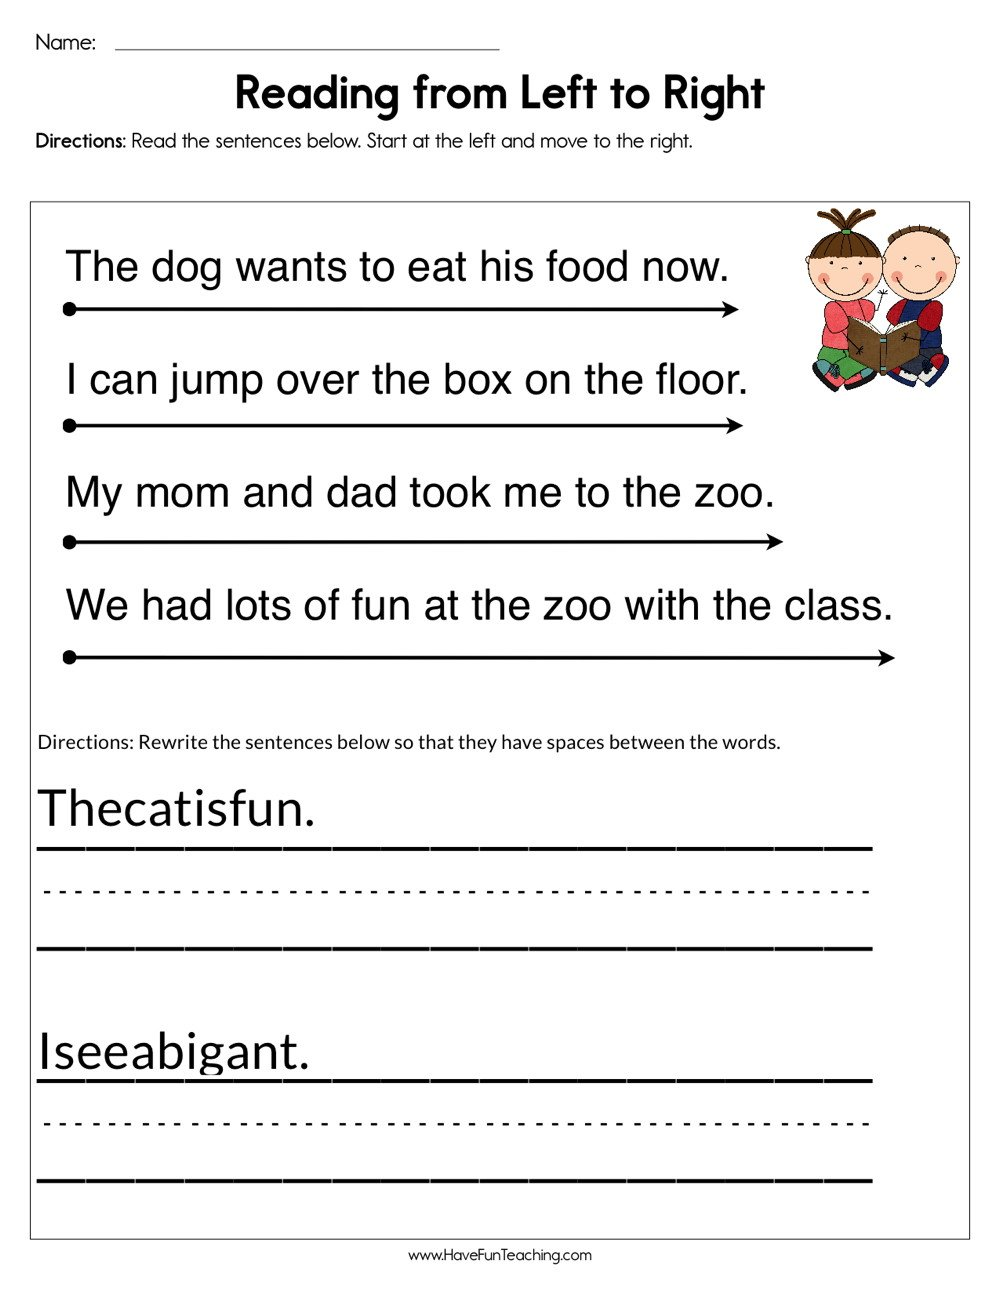 reading from left to right worksheet